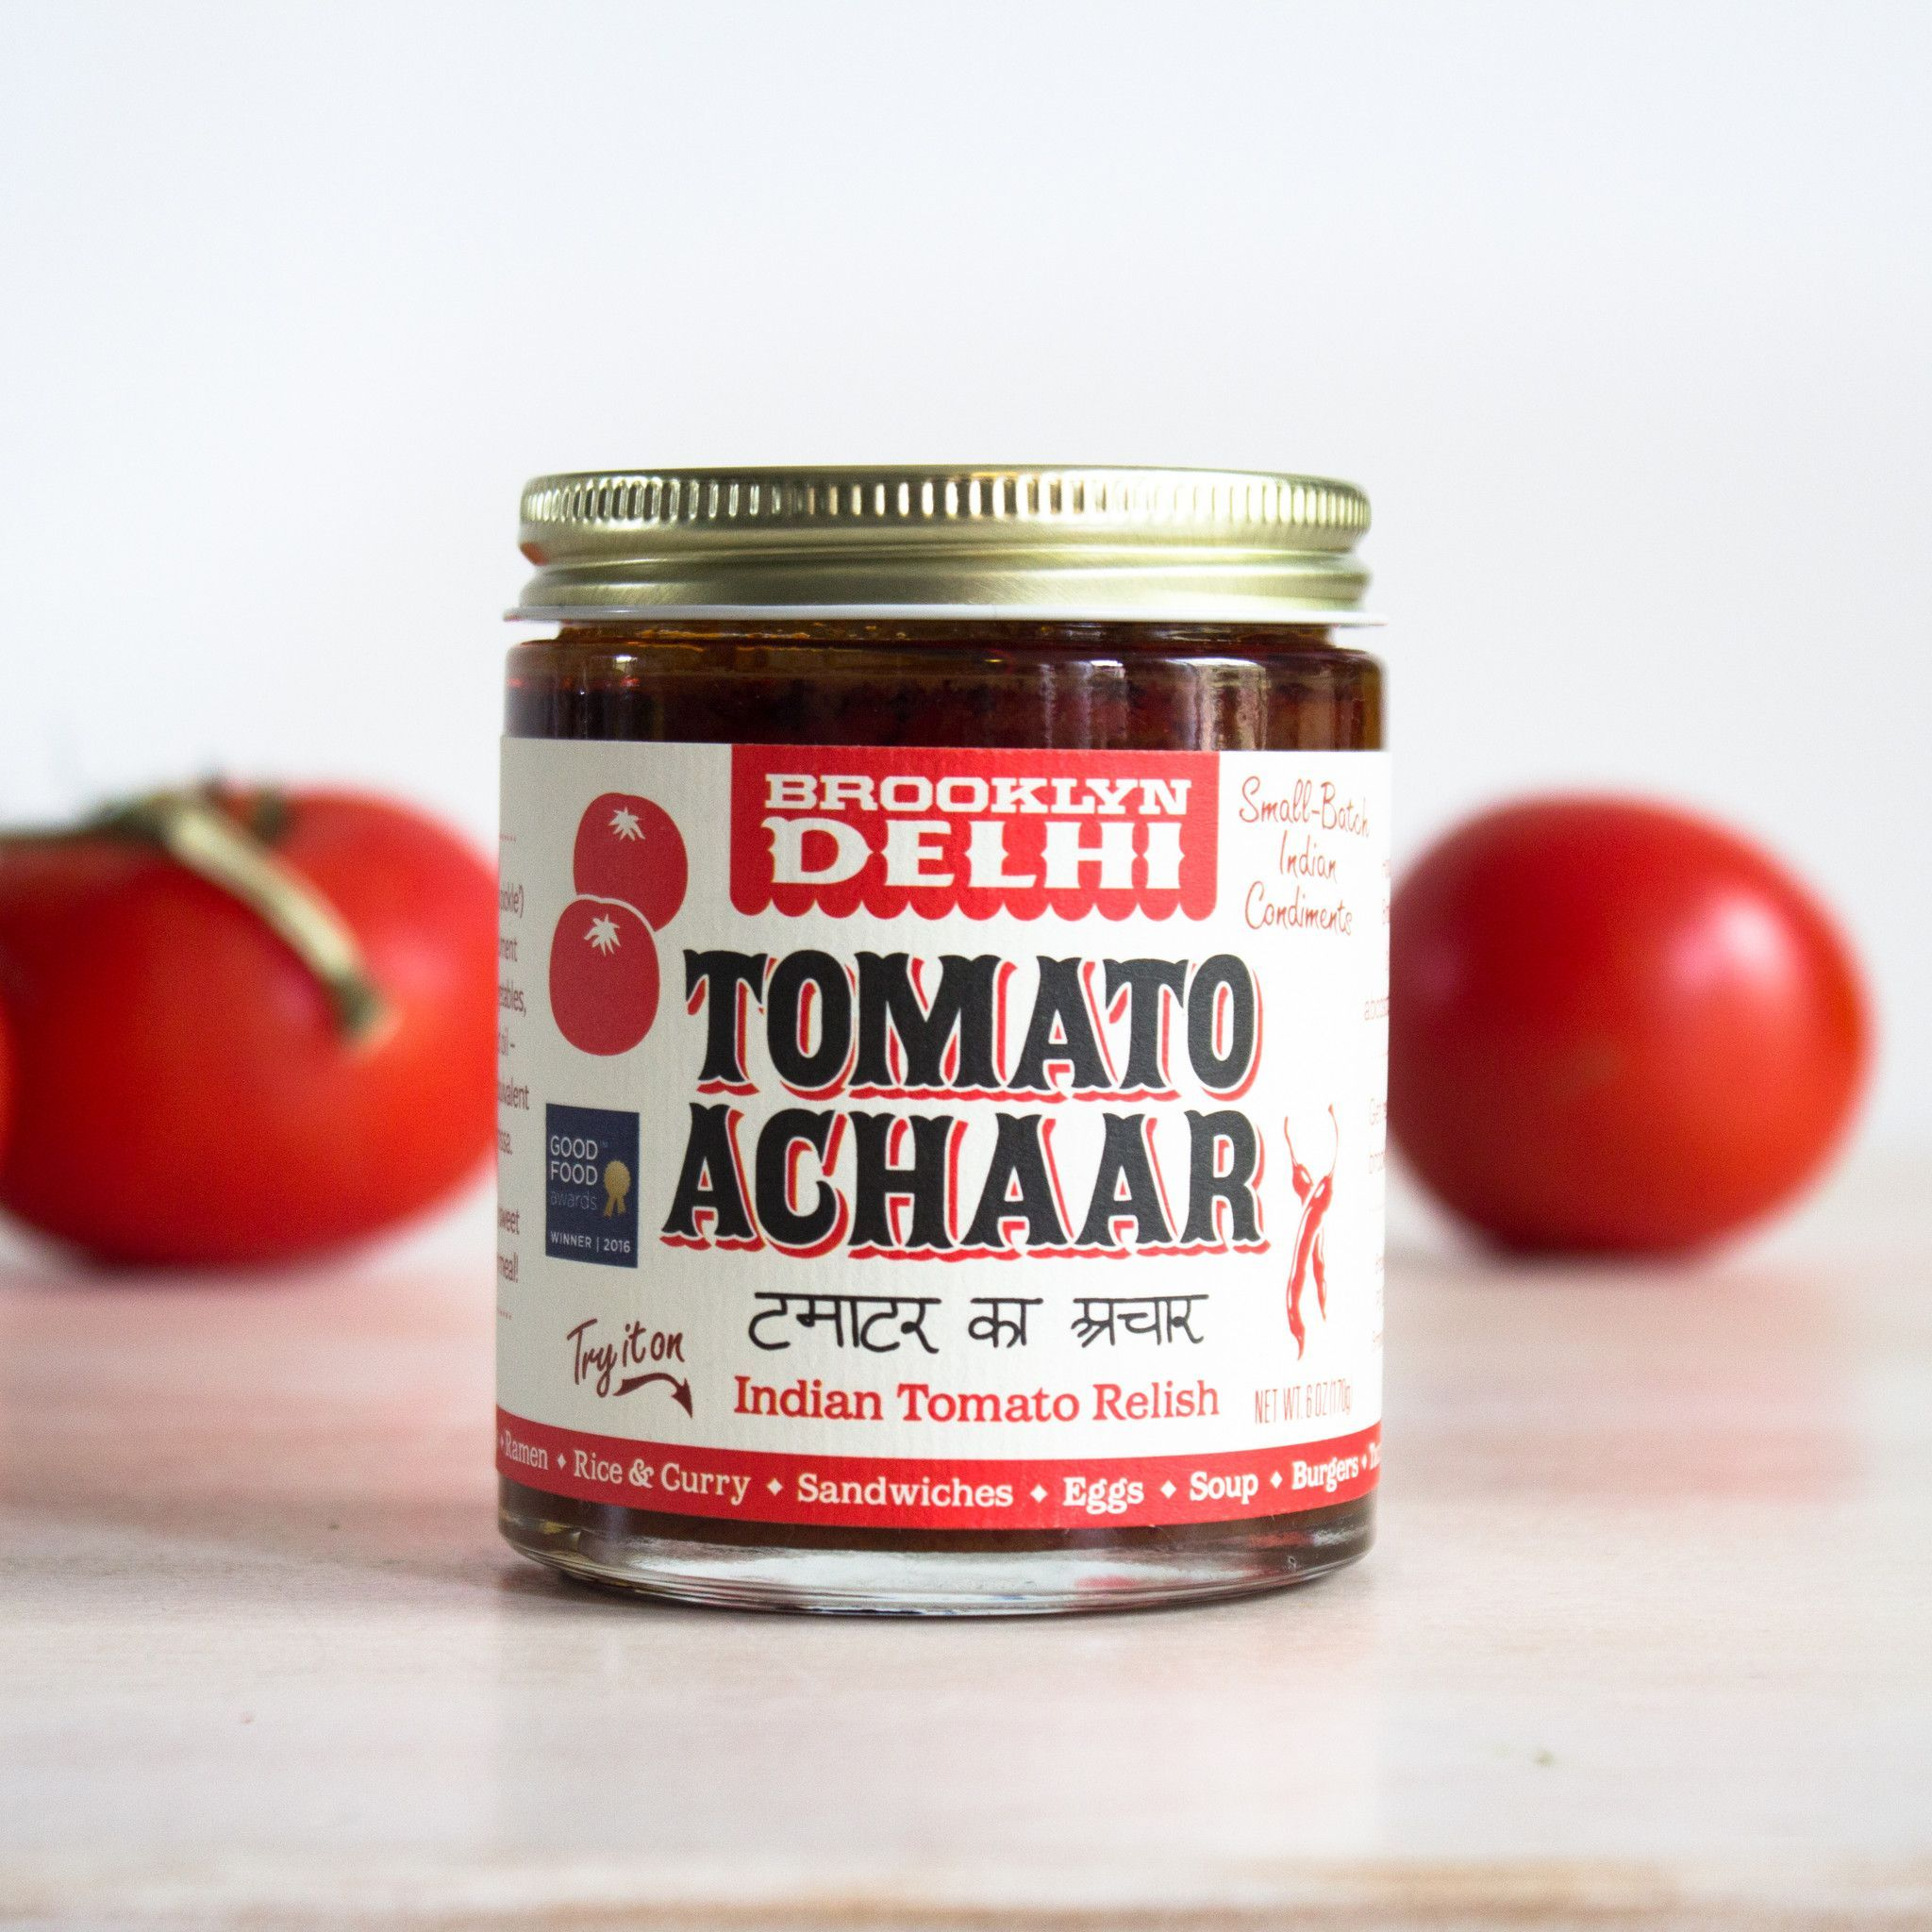 Tomato Achaar by Brooklyn Delhi Tomato relish, Spicy